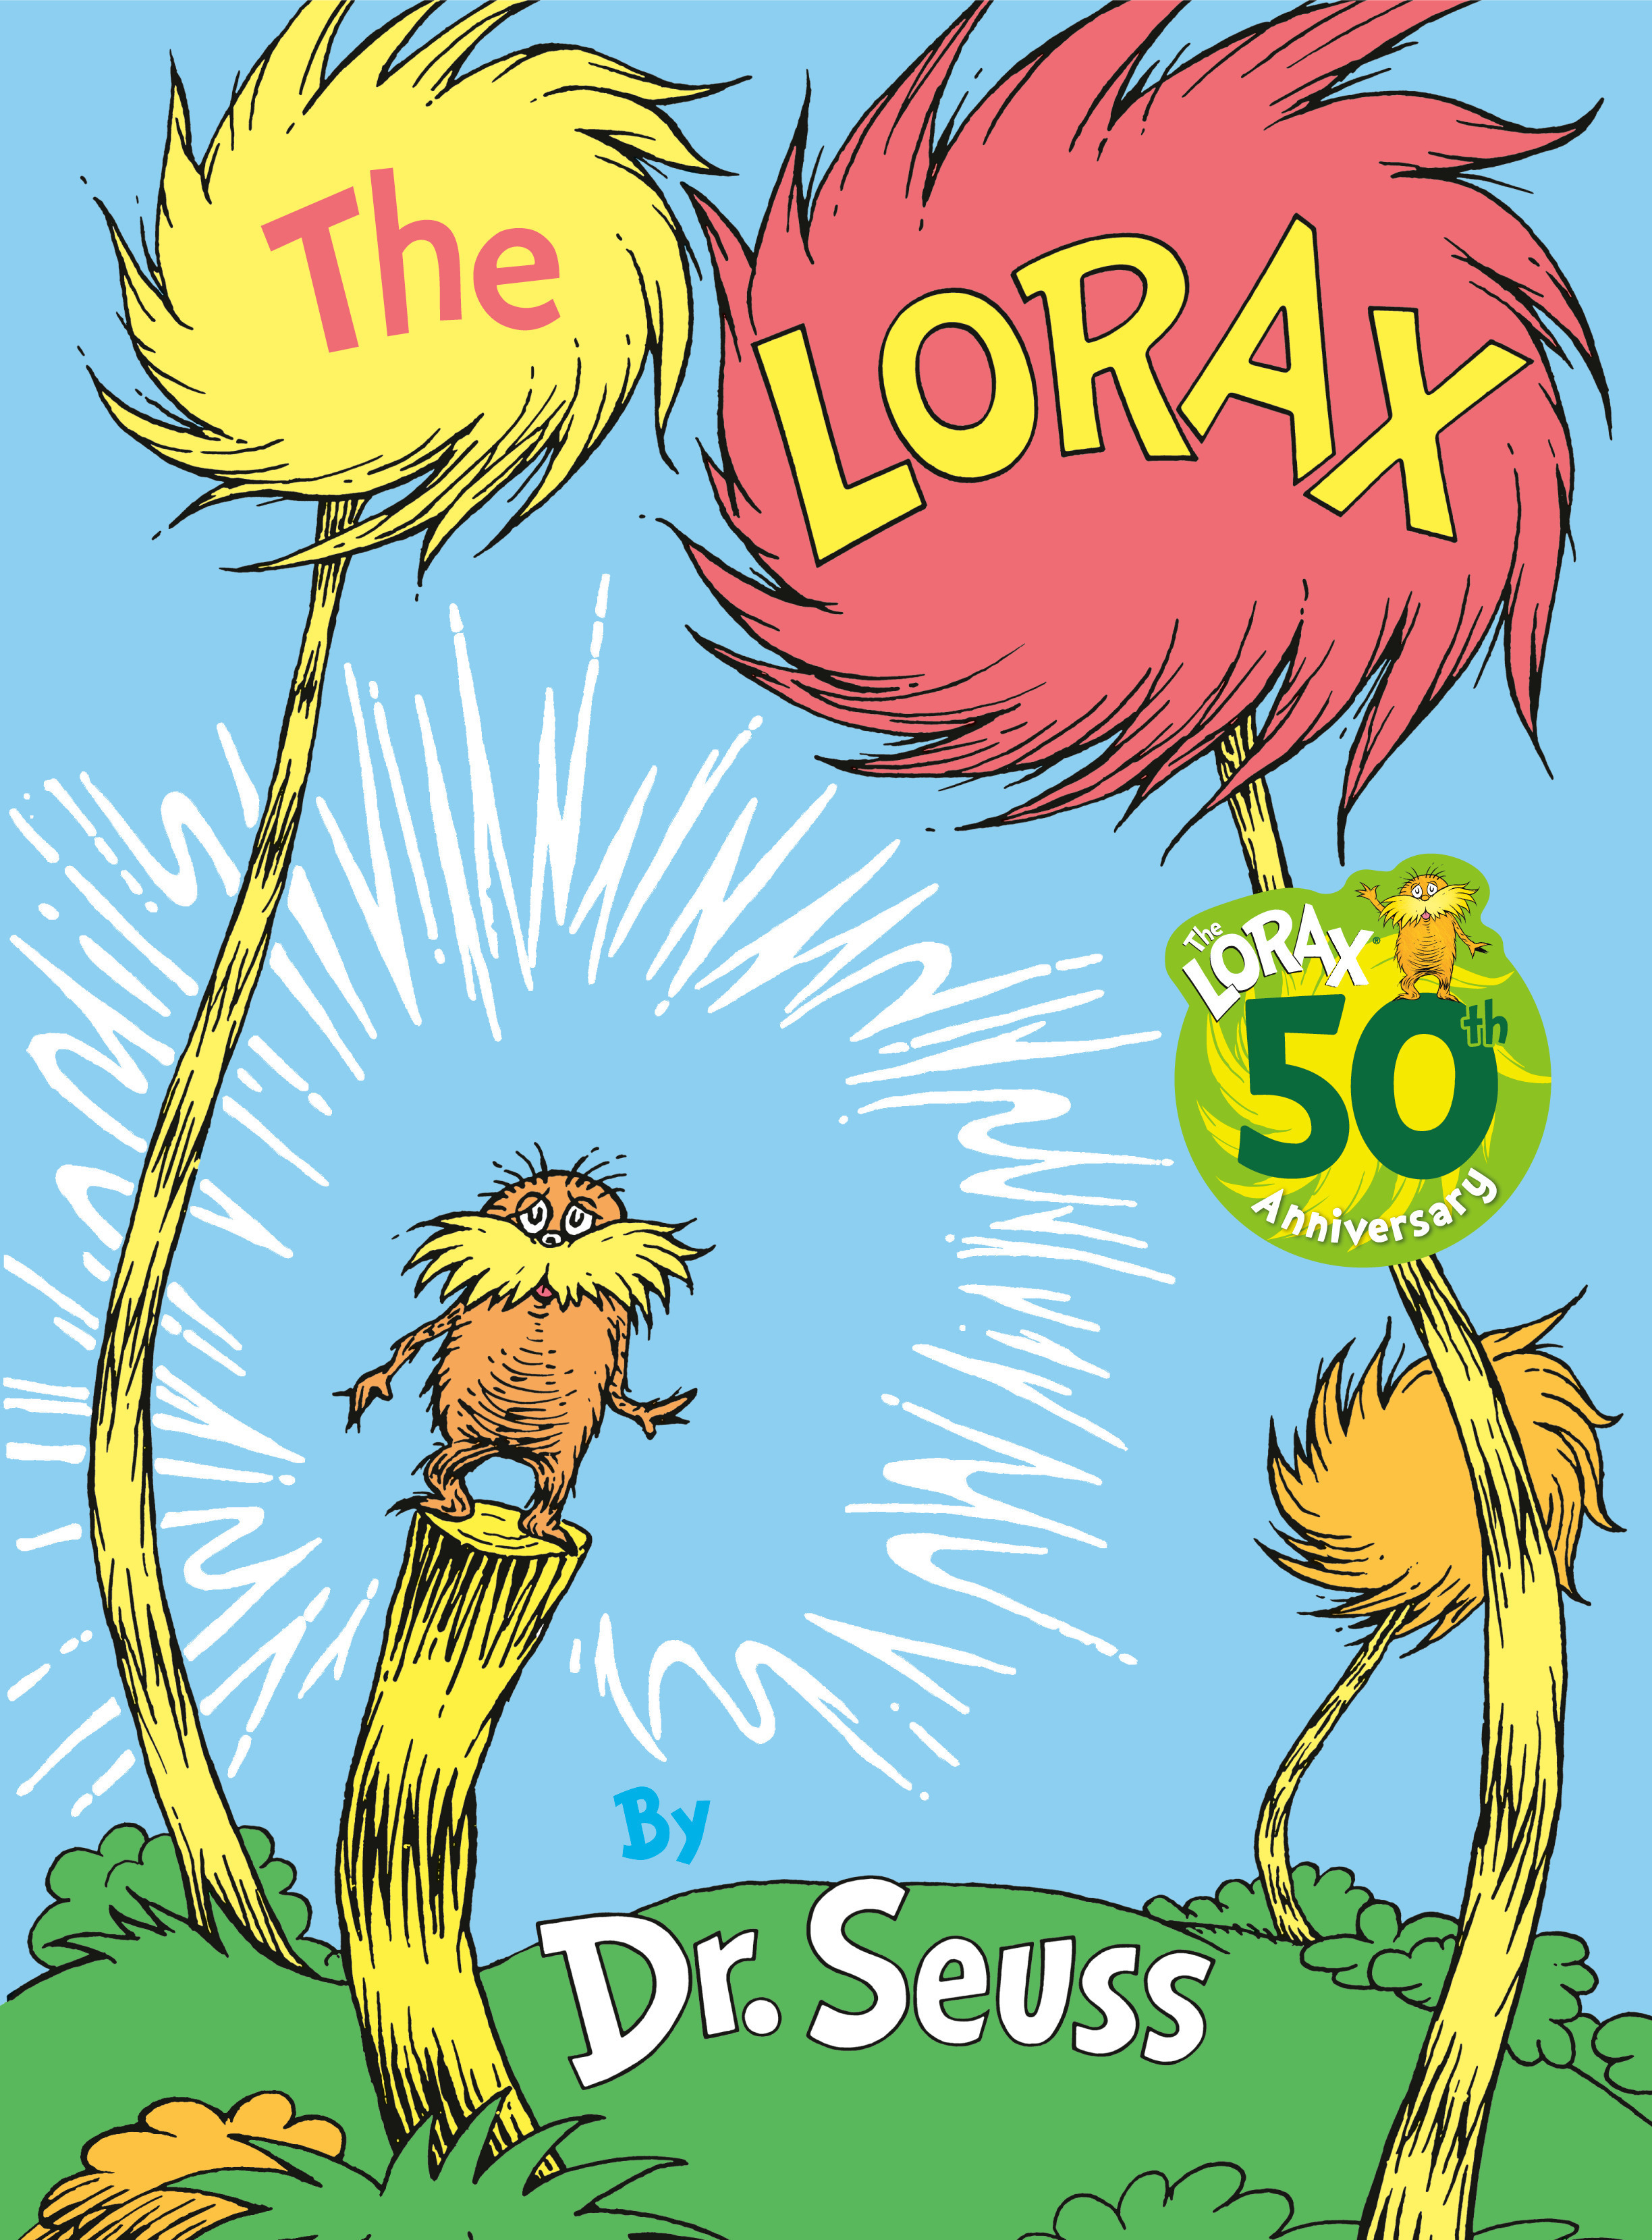 Dr. Seuss Warned Us 50 Years Ago, But We Didn't Listen To 'The Lorax' : NPR